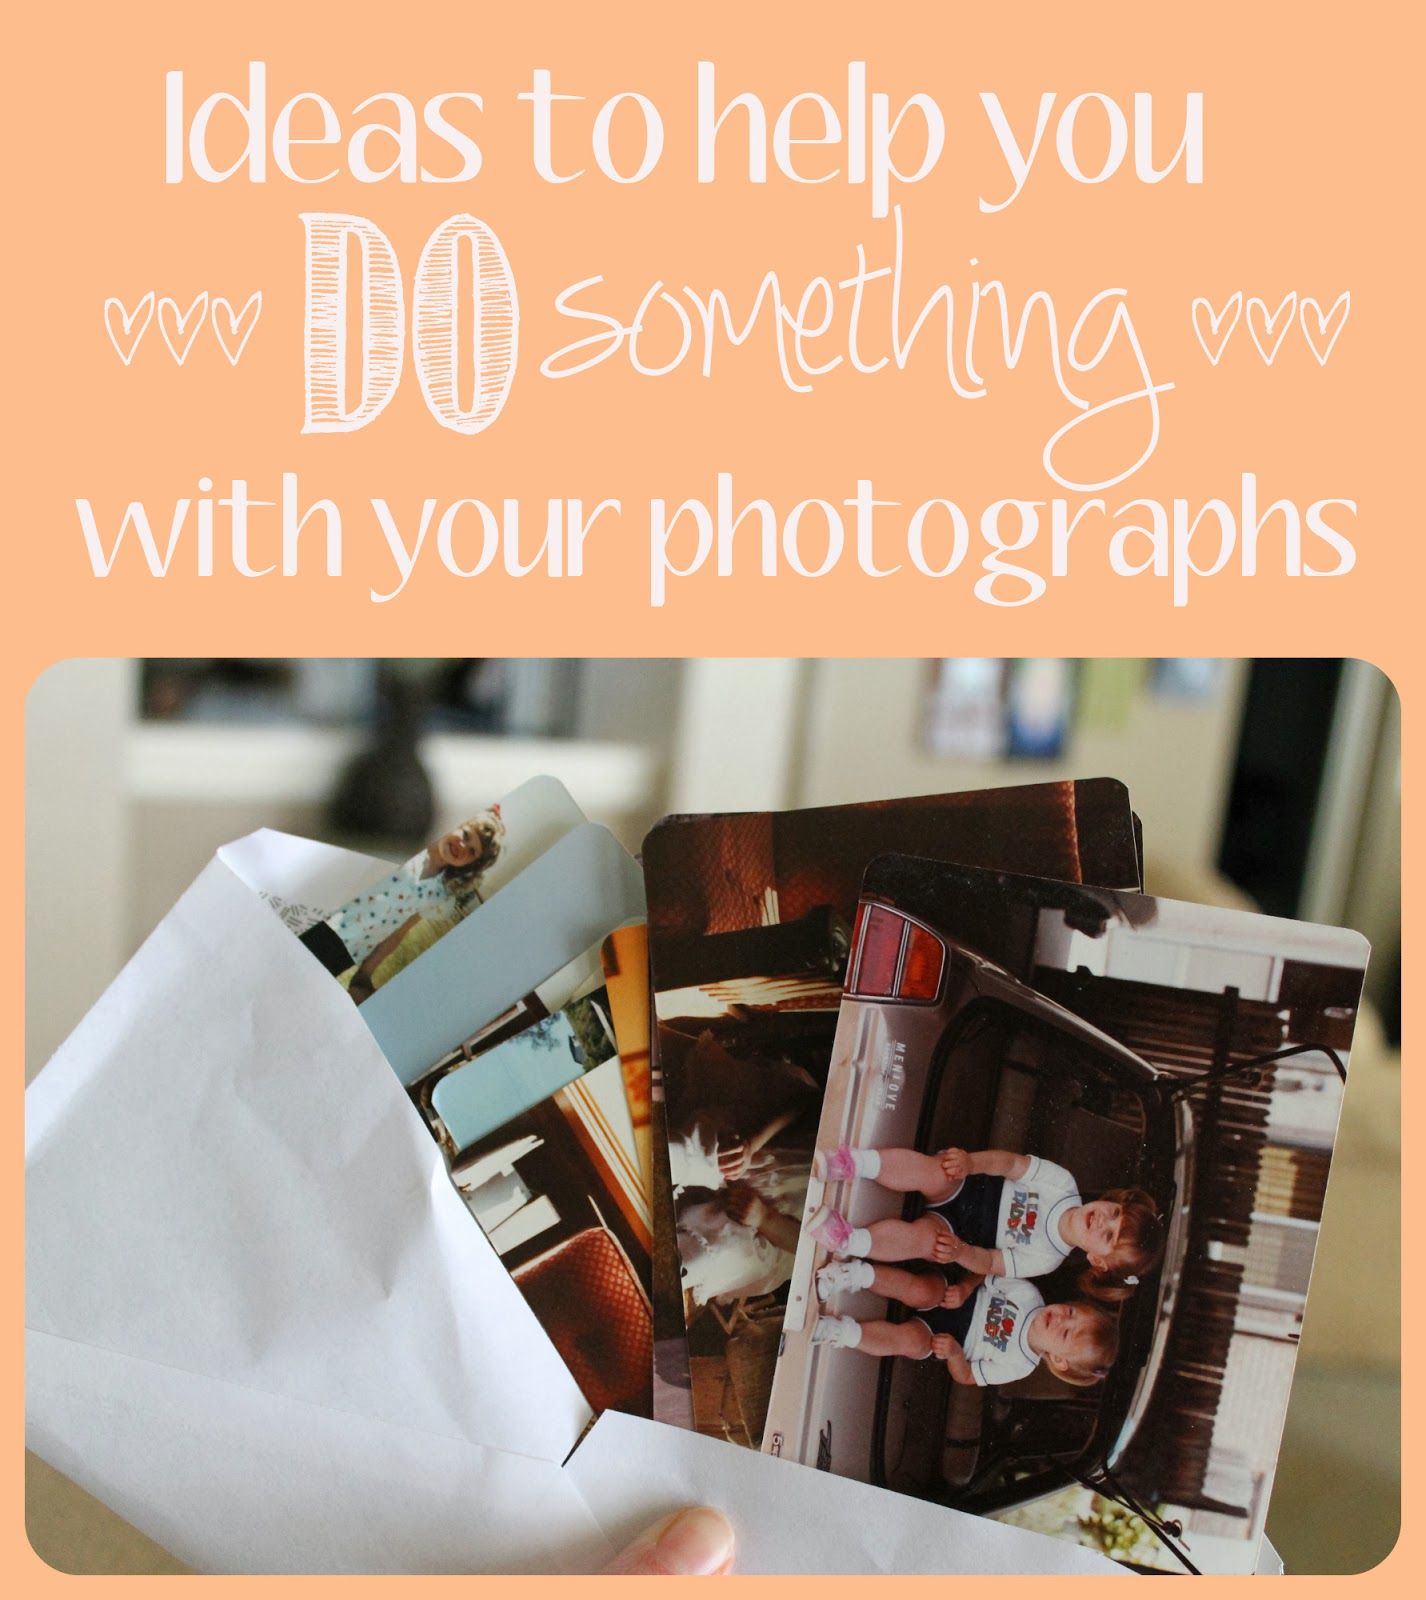 ideas for photos albums, preserving memories, what to do with photos, scrapbooking